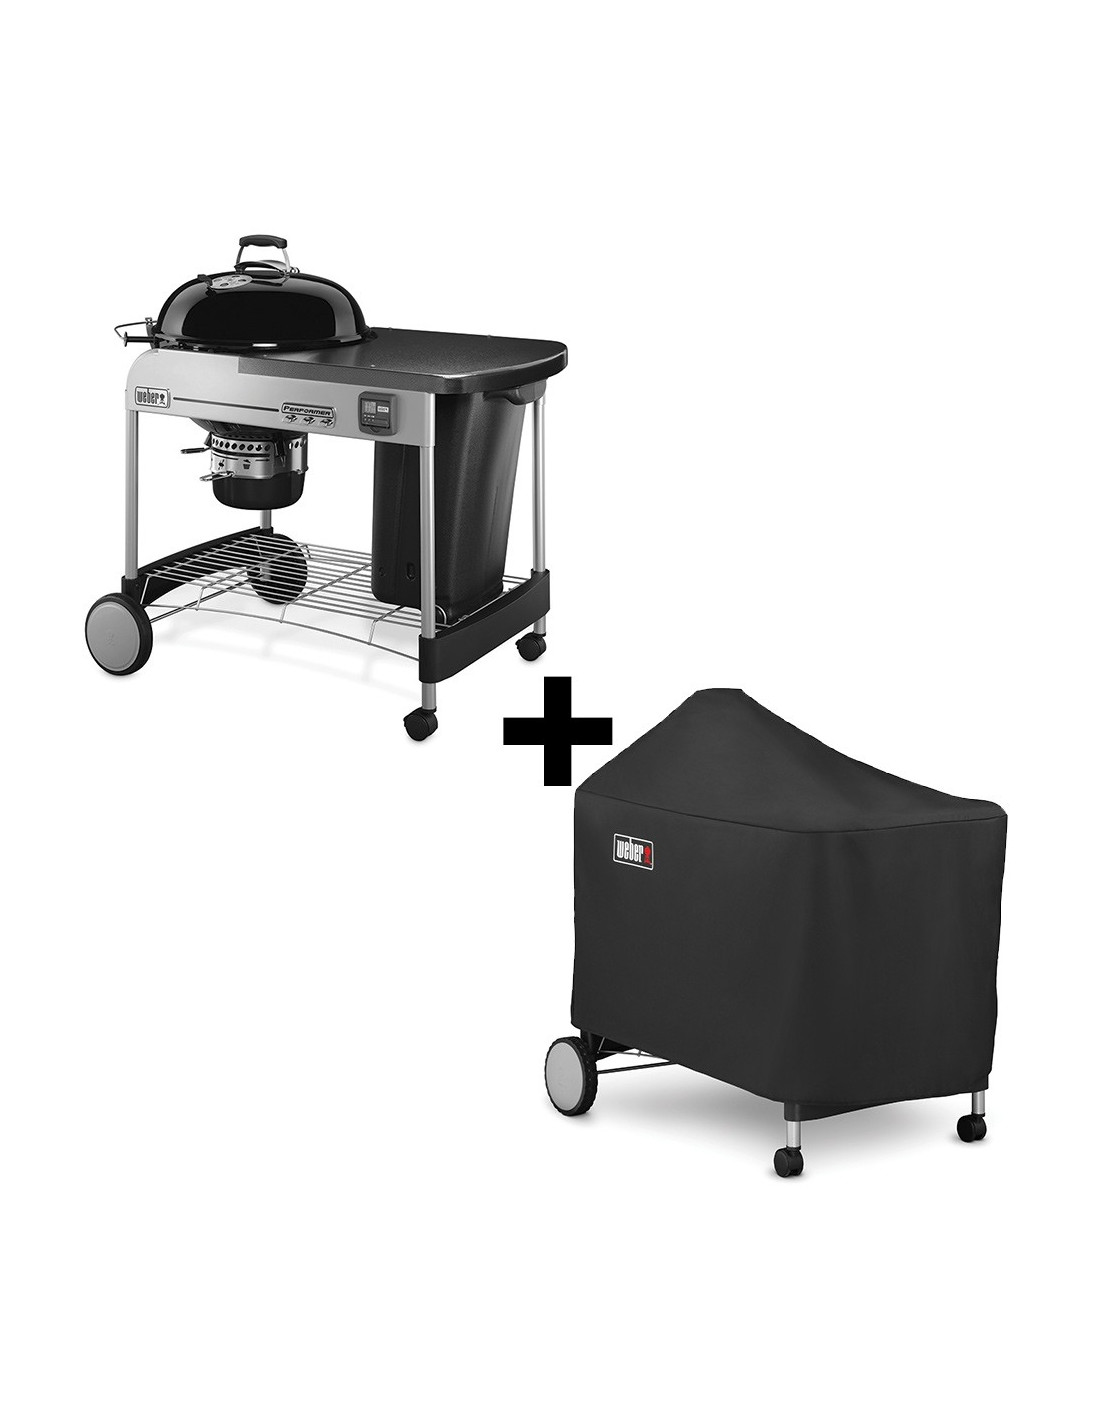 barbecue weber performer premium 57 cm barbecue charbon. Black Bedroom Furniture Sets. Home Design Ideas